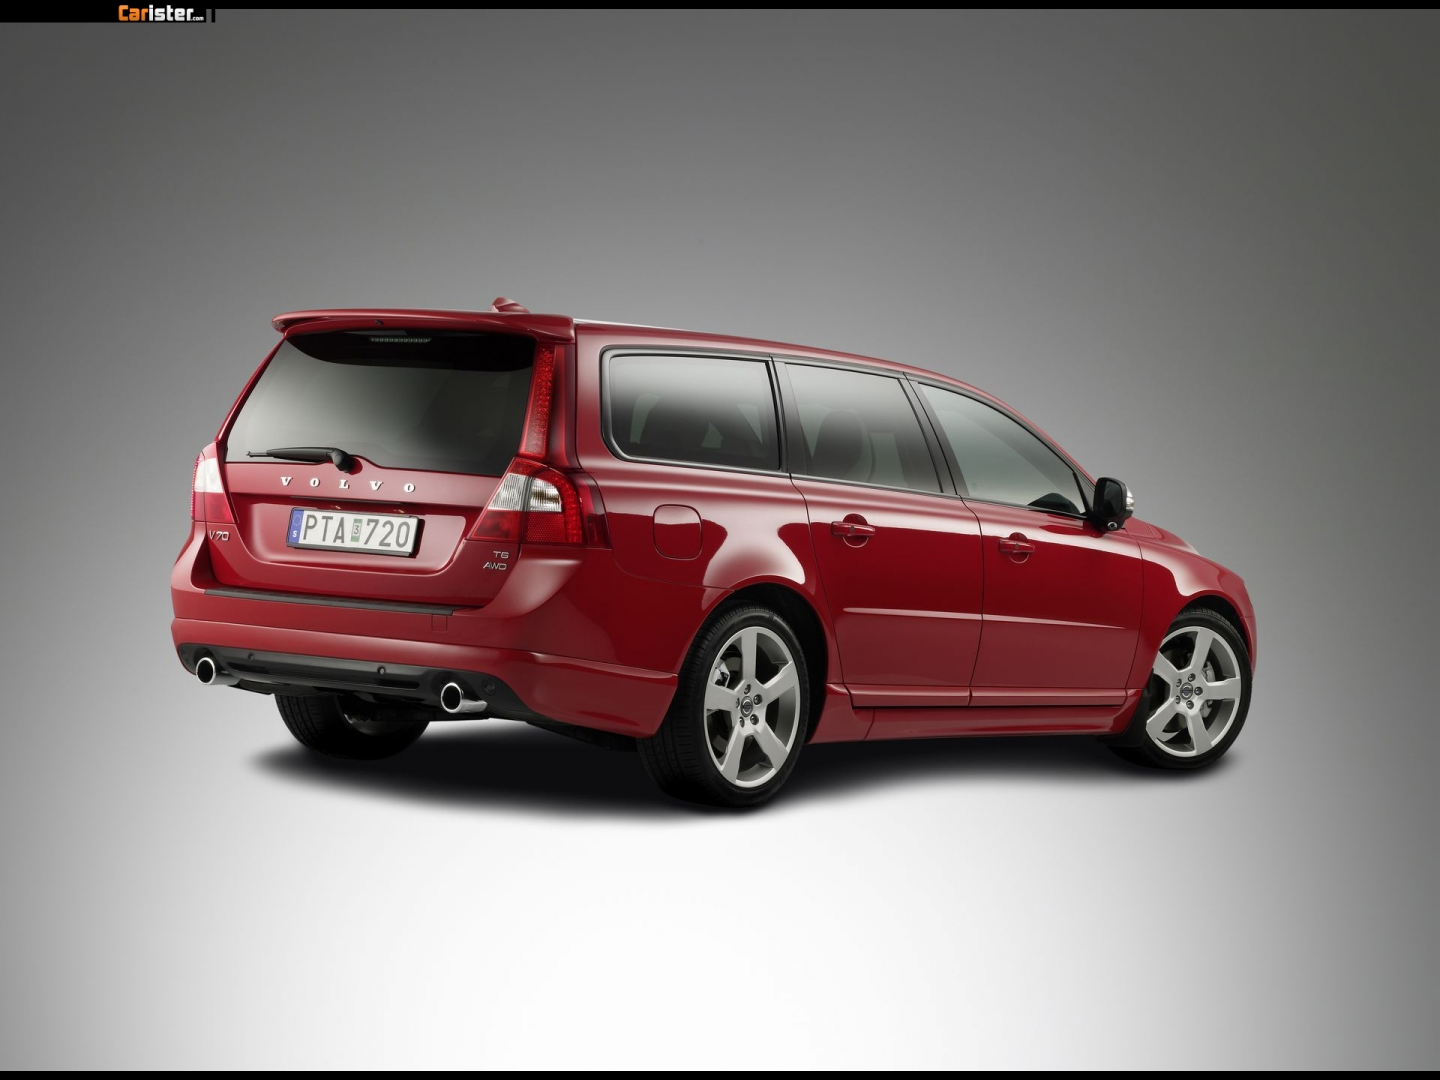 Volvo V70 R-Design 2008 - Photo 02 - Taille: 1440x1080